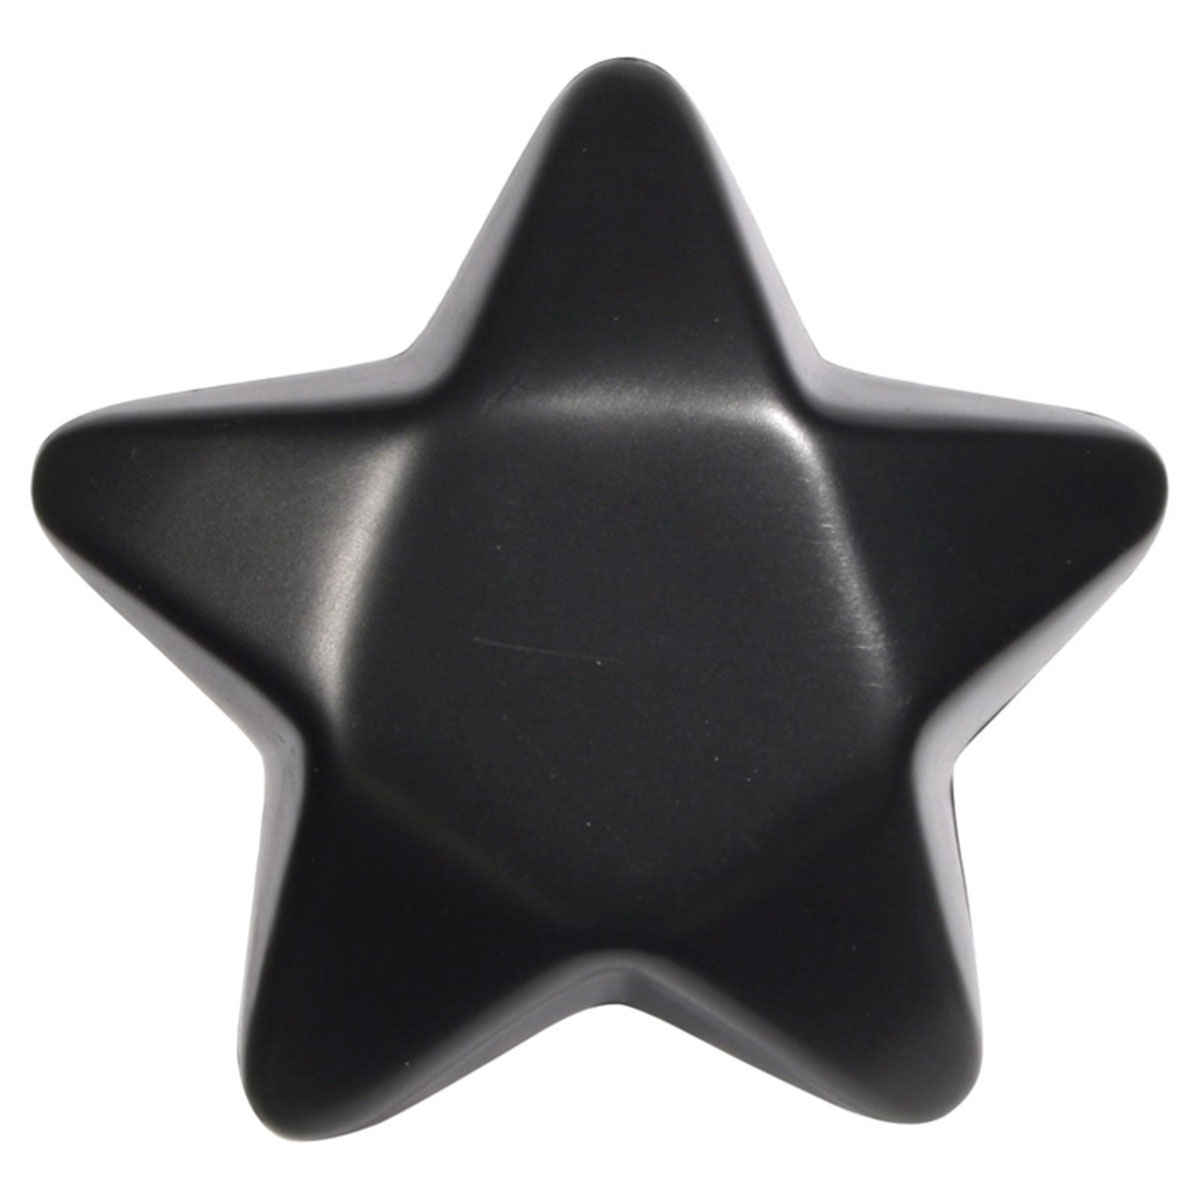 Black Star Stress Reliever